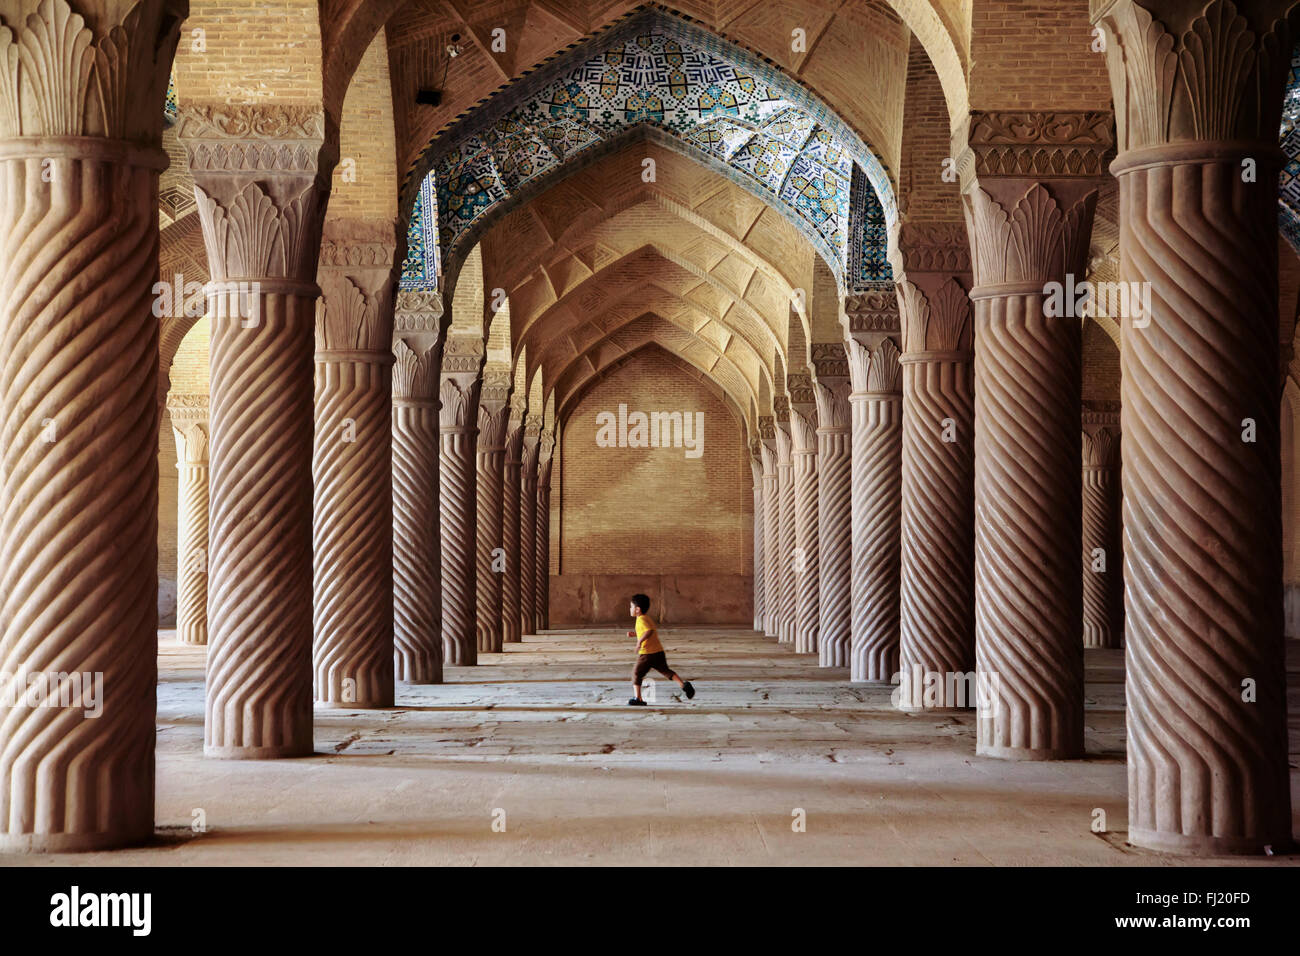 Child running inside Vakil mosque, Shiraz, Chiraz , Iran - Stock Image